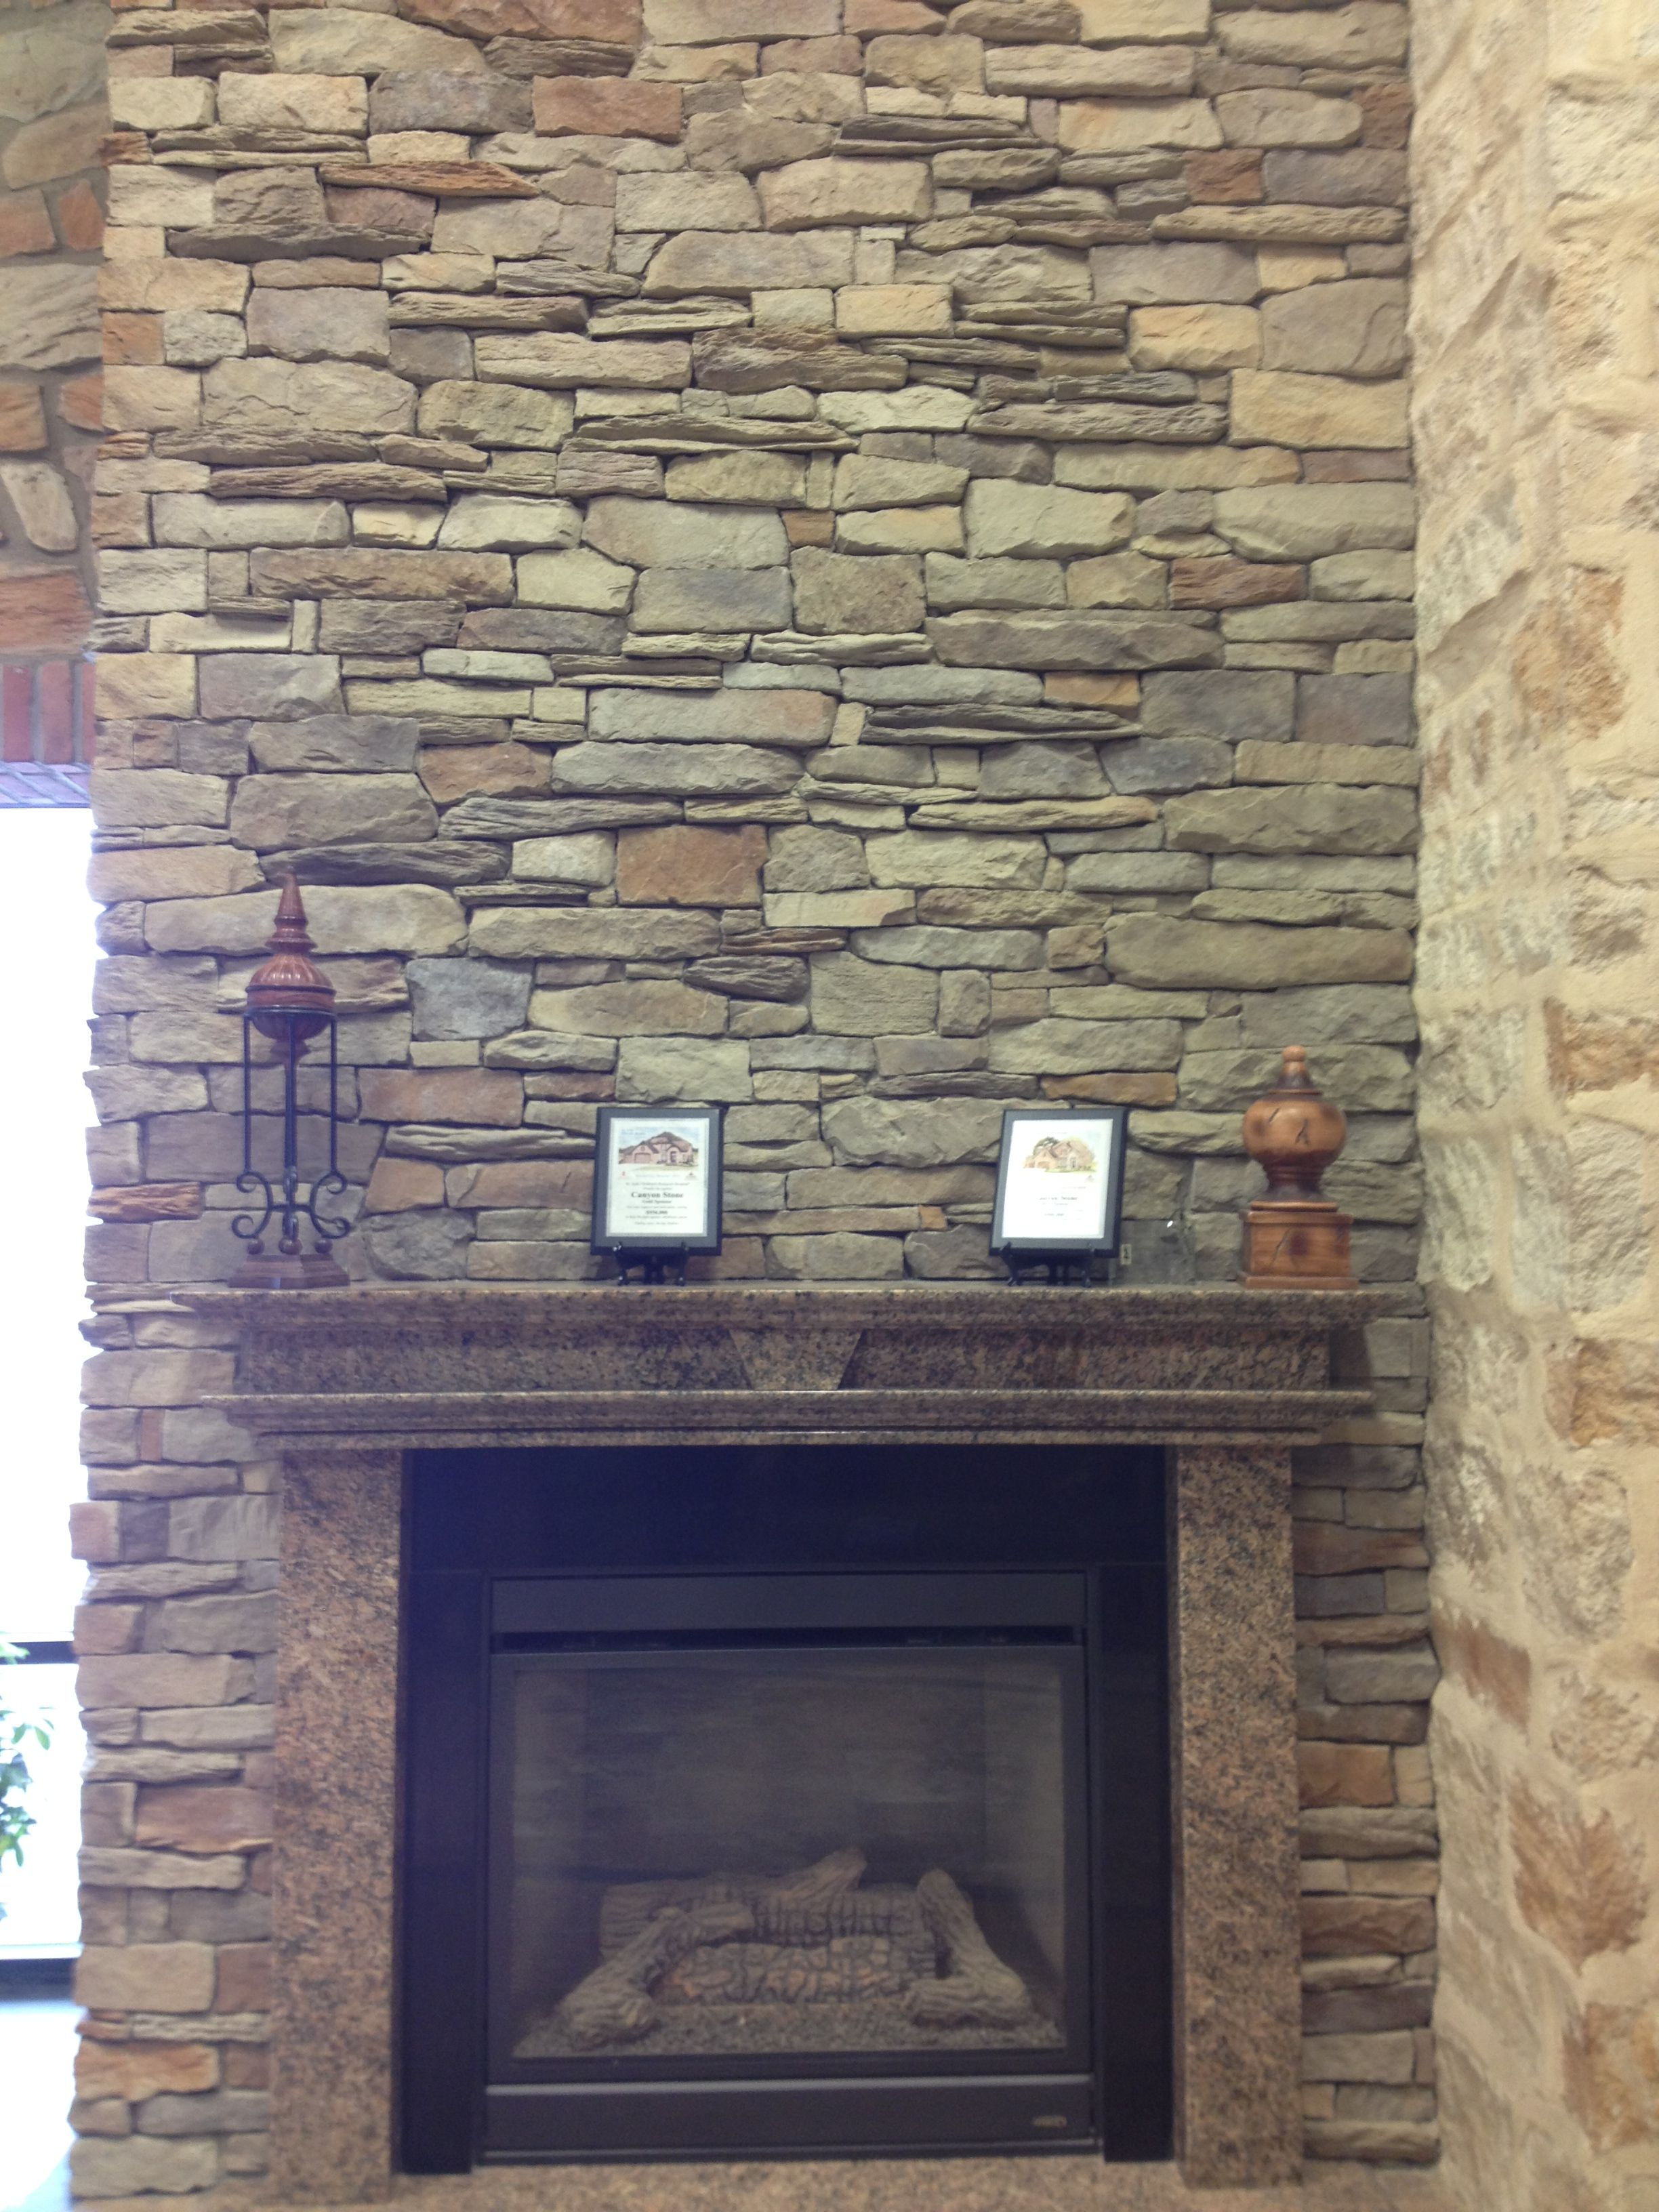 Granite Slab for Fireplace Hearth Inspirational Canyon Stone southern Ledge Suede